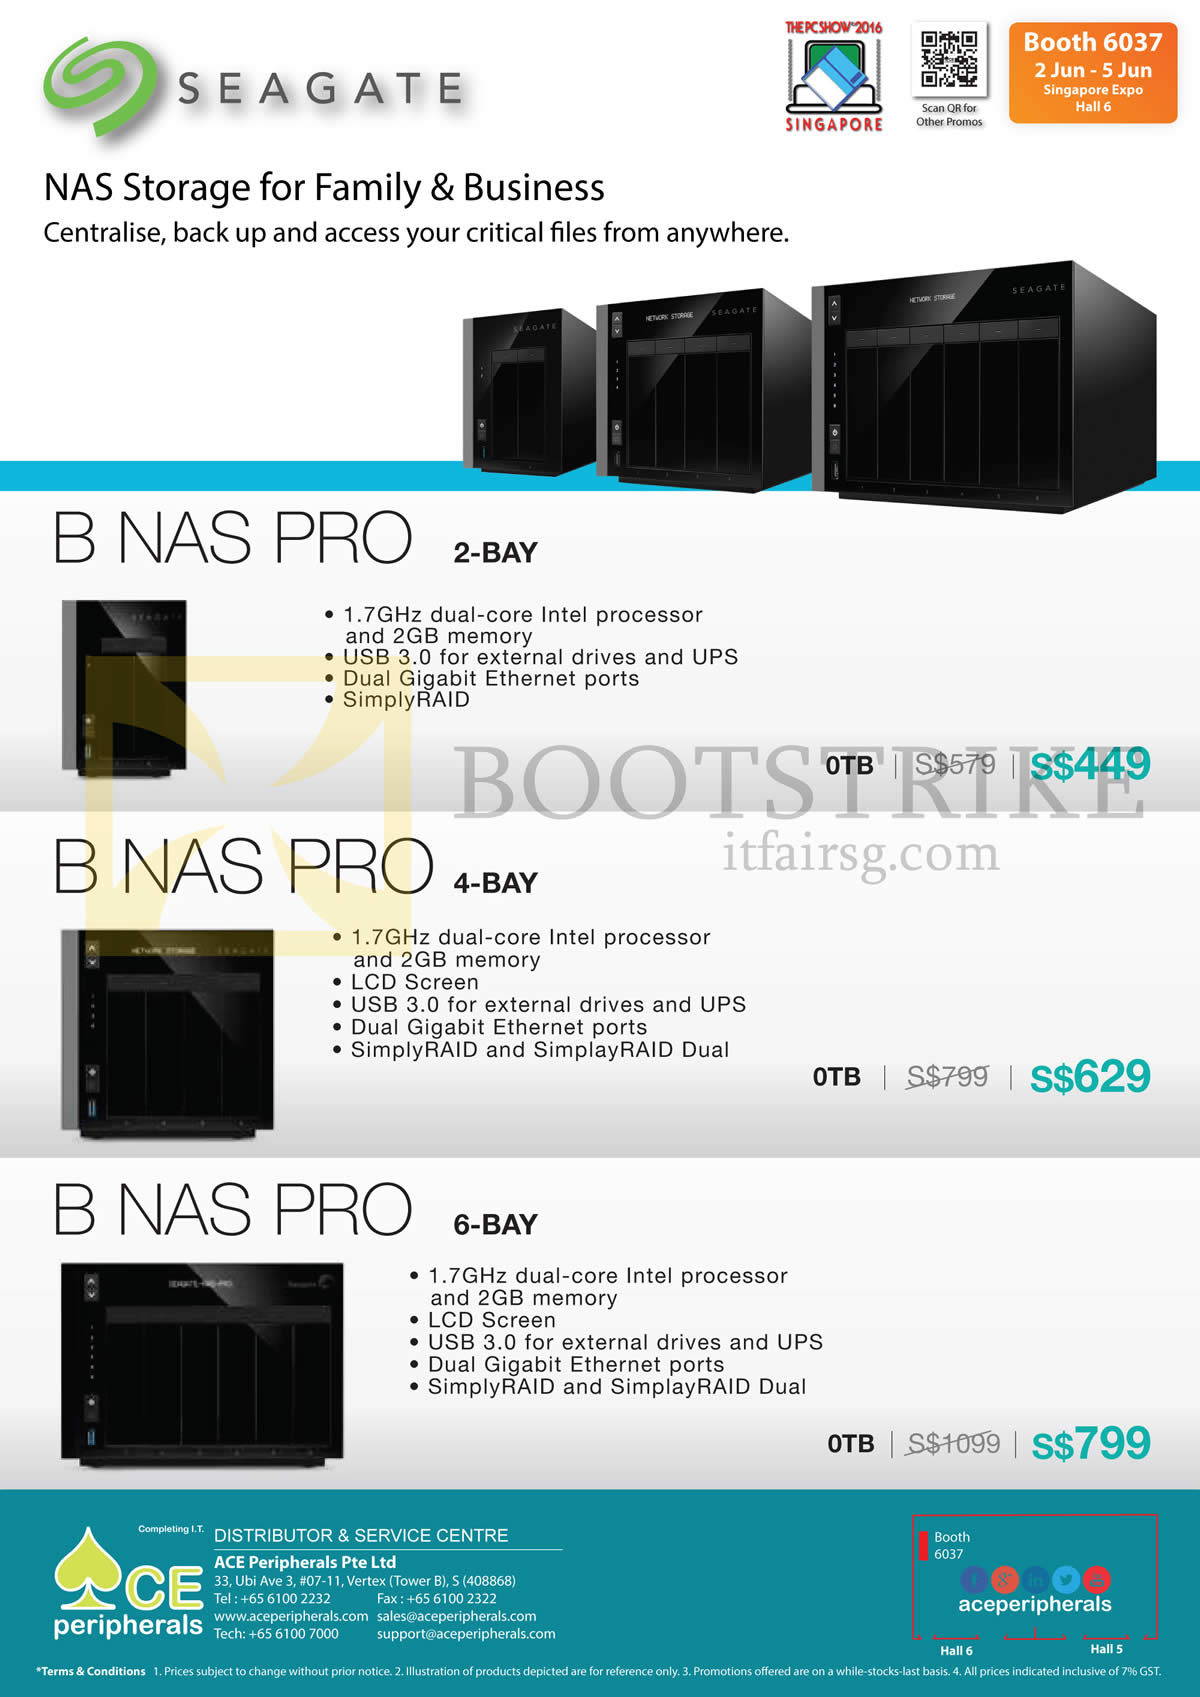 PC SHOW 2016 price list image brochure of Ace Peripherals Seagate Business Storage B NAS Pro 2-Bay, 4-Bay, 6-Bay